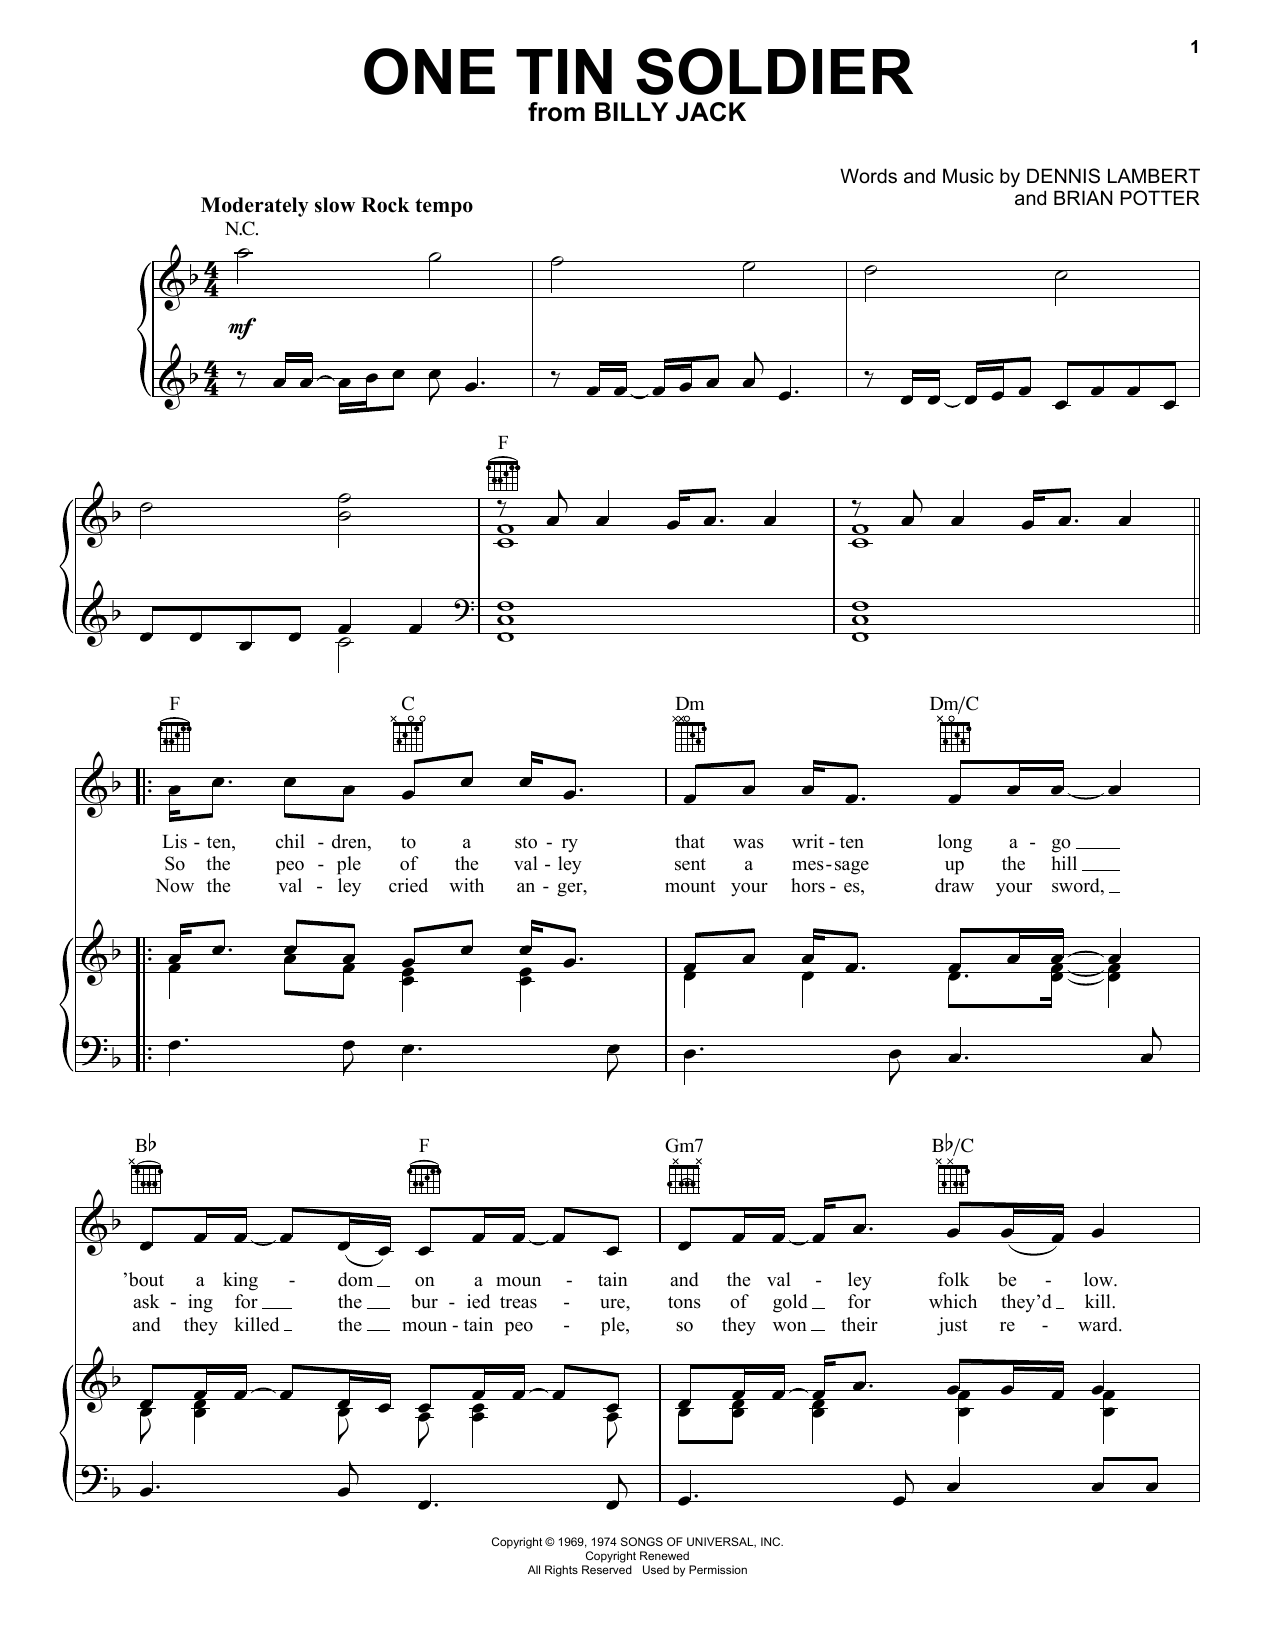 Coven One Tin Soldier sheet music notes and chords. Download Printable PDF.